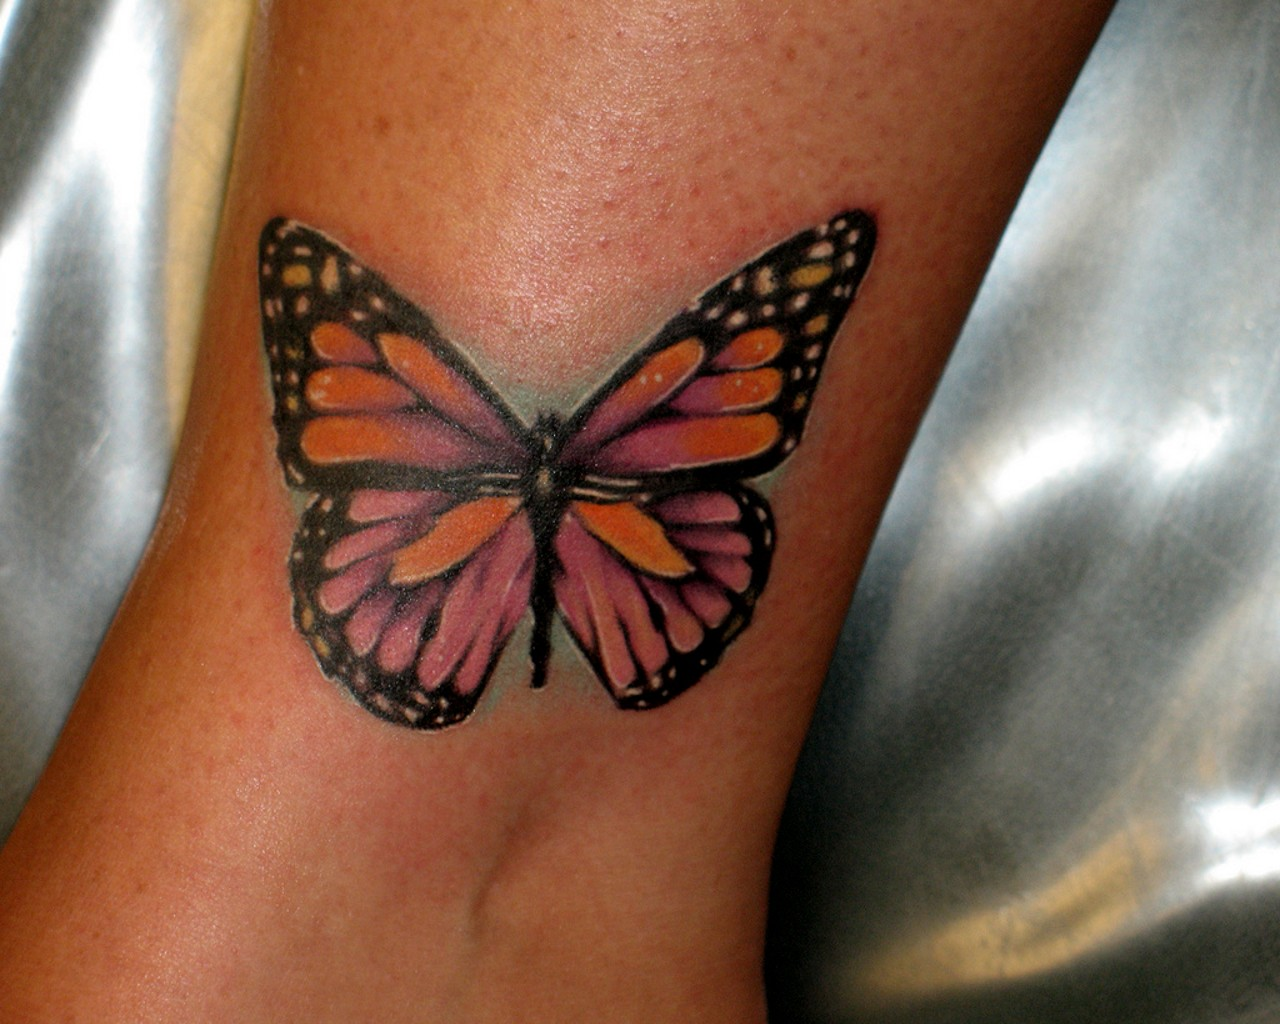 Gorgeous Butterfly Tattoo On Ankle